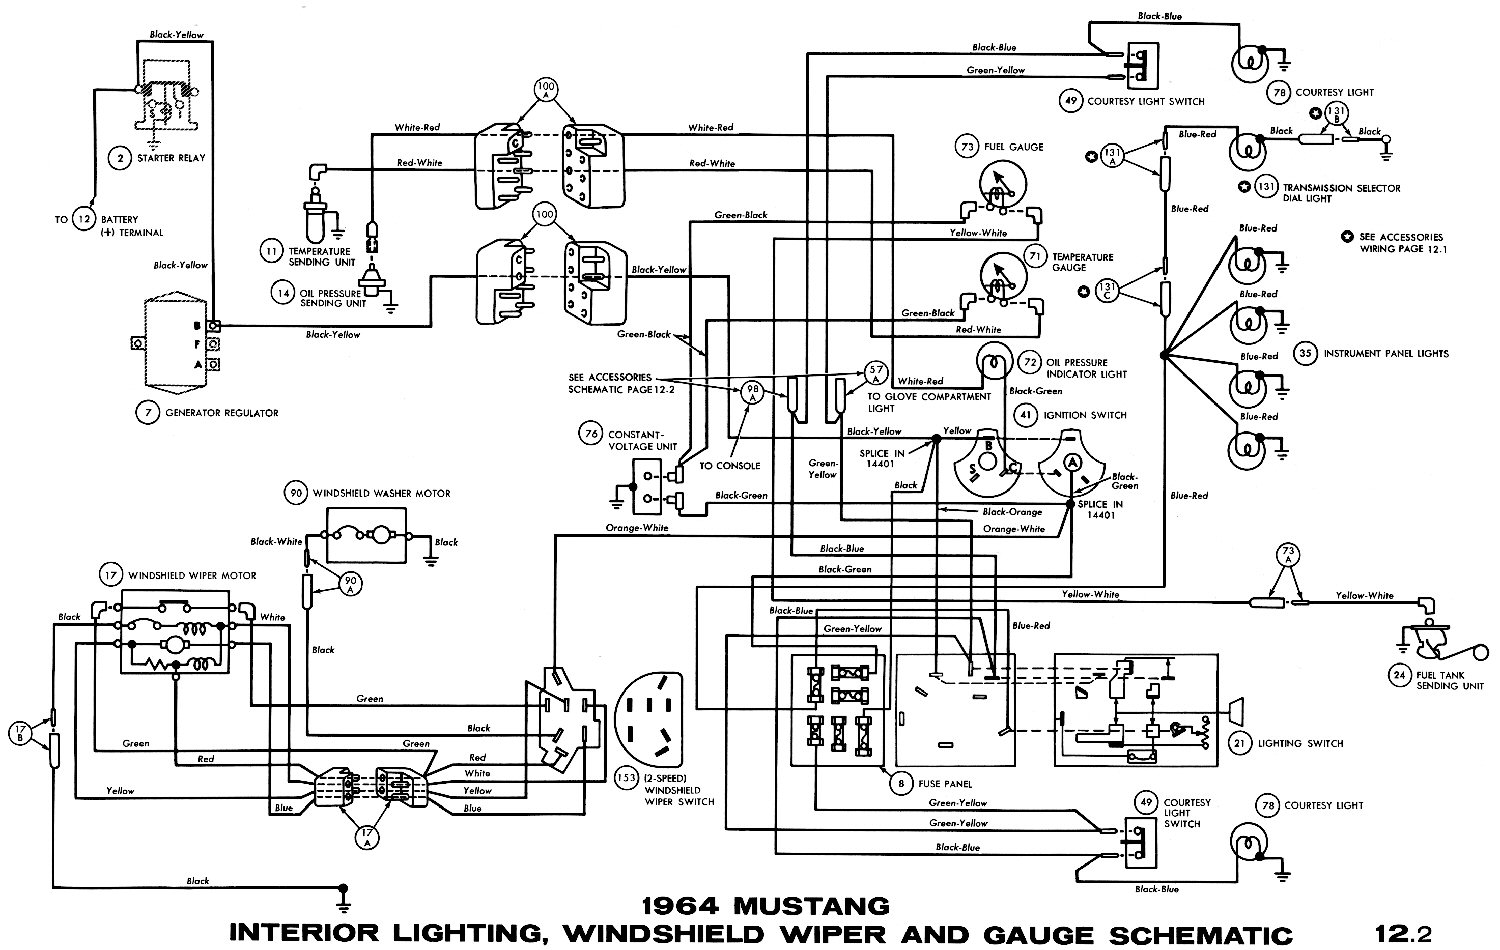 1964k mustang wiring diagrams mustang engine diagram \u2022 free wiring 1971 mustang fuse box diagram at mr168.co